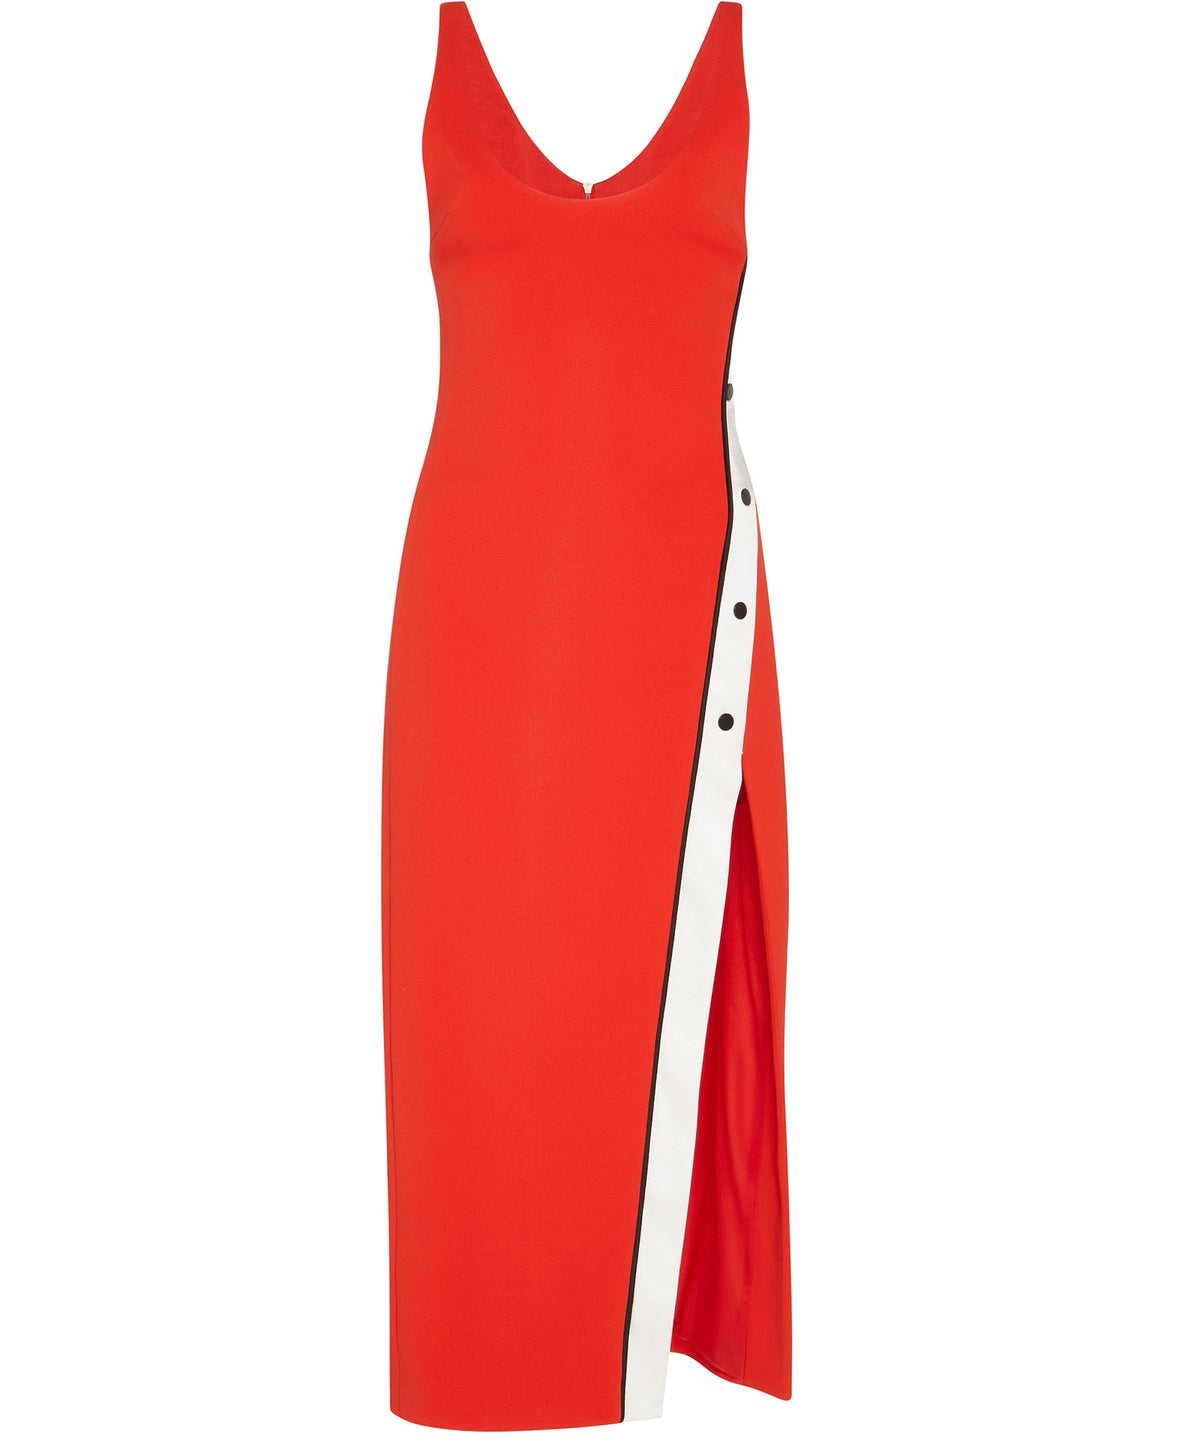 Slit Tank Dress - THE BOX BOUTIQUE